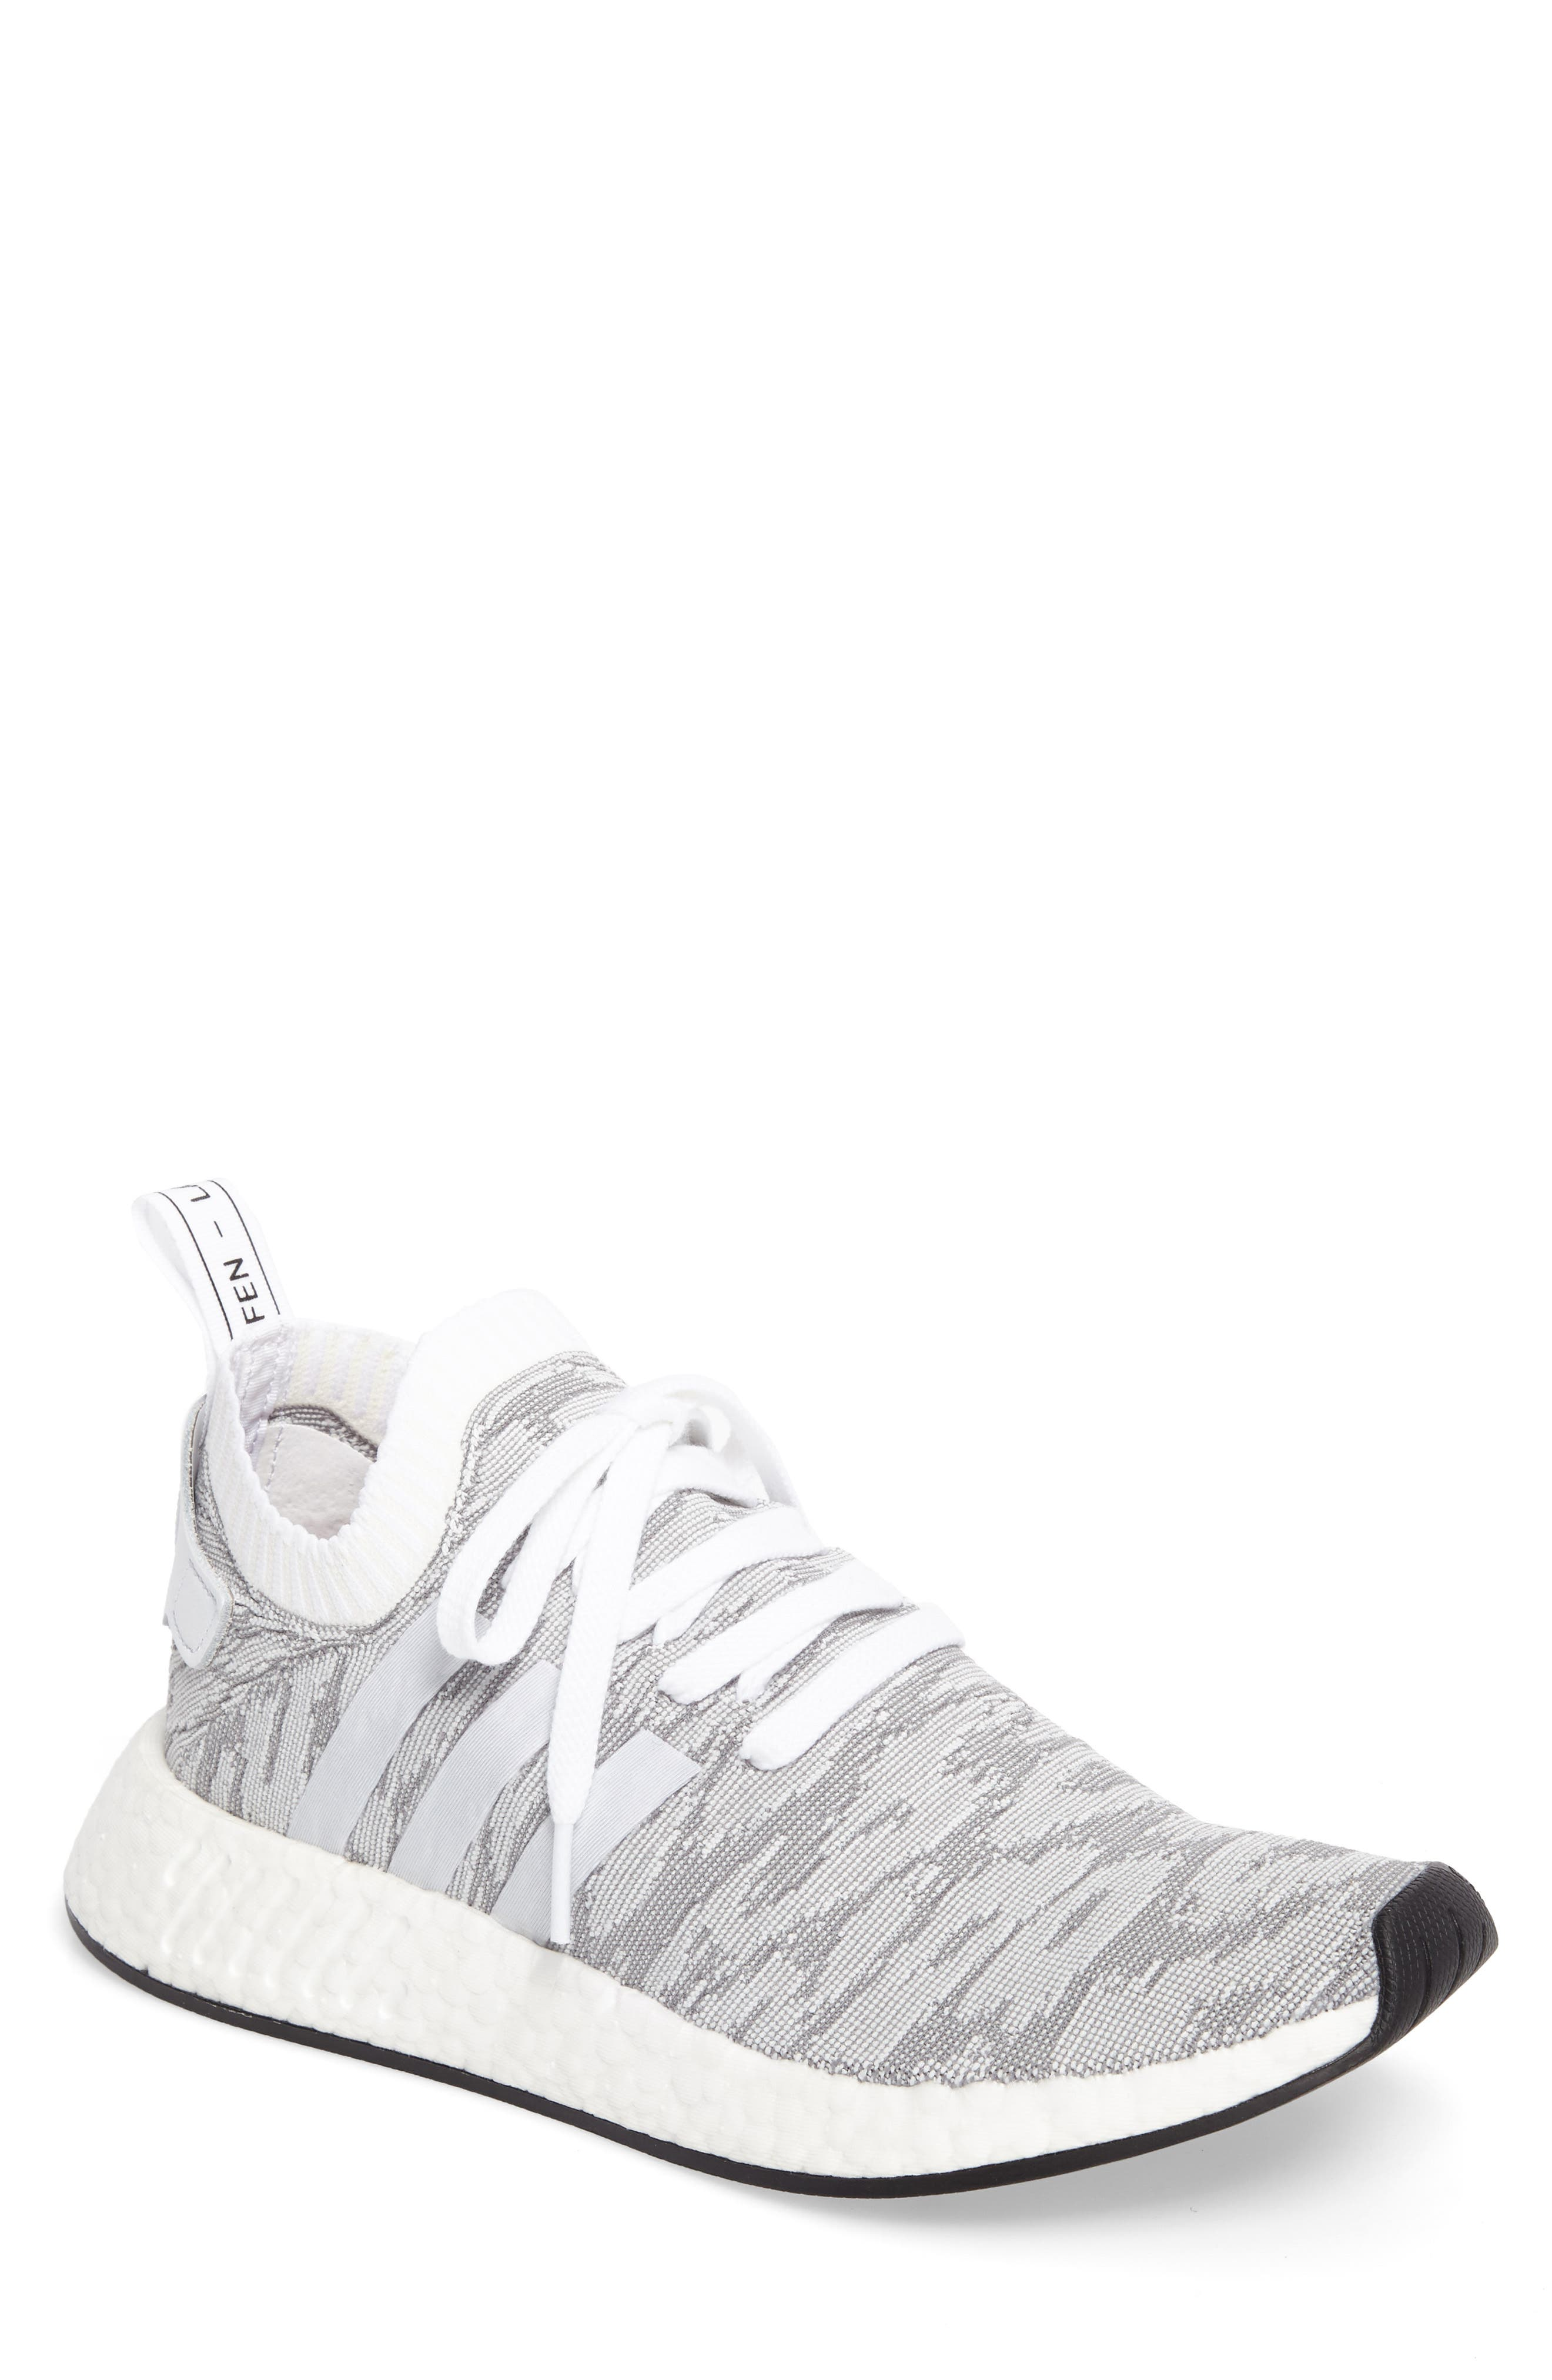 NMD R2 Primeknit Running Shoe,                         Main,                         color, White/ White/ Core Black